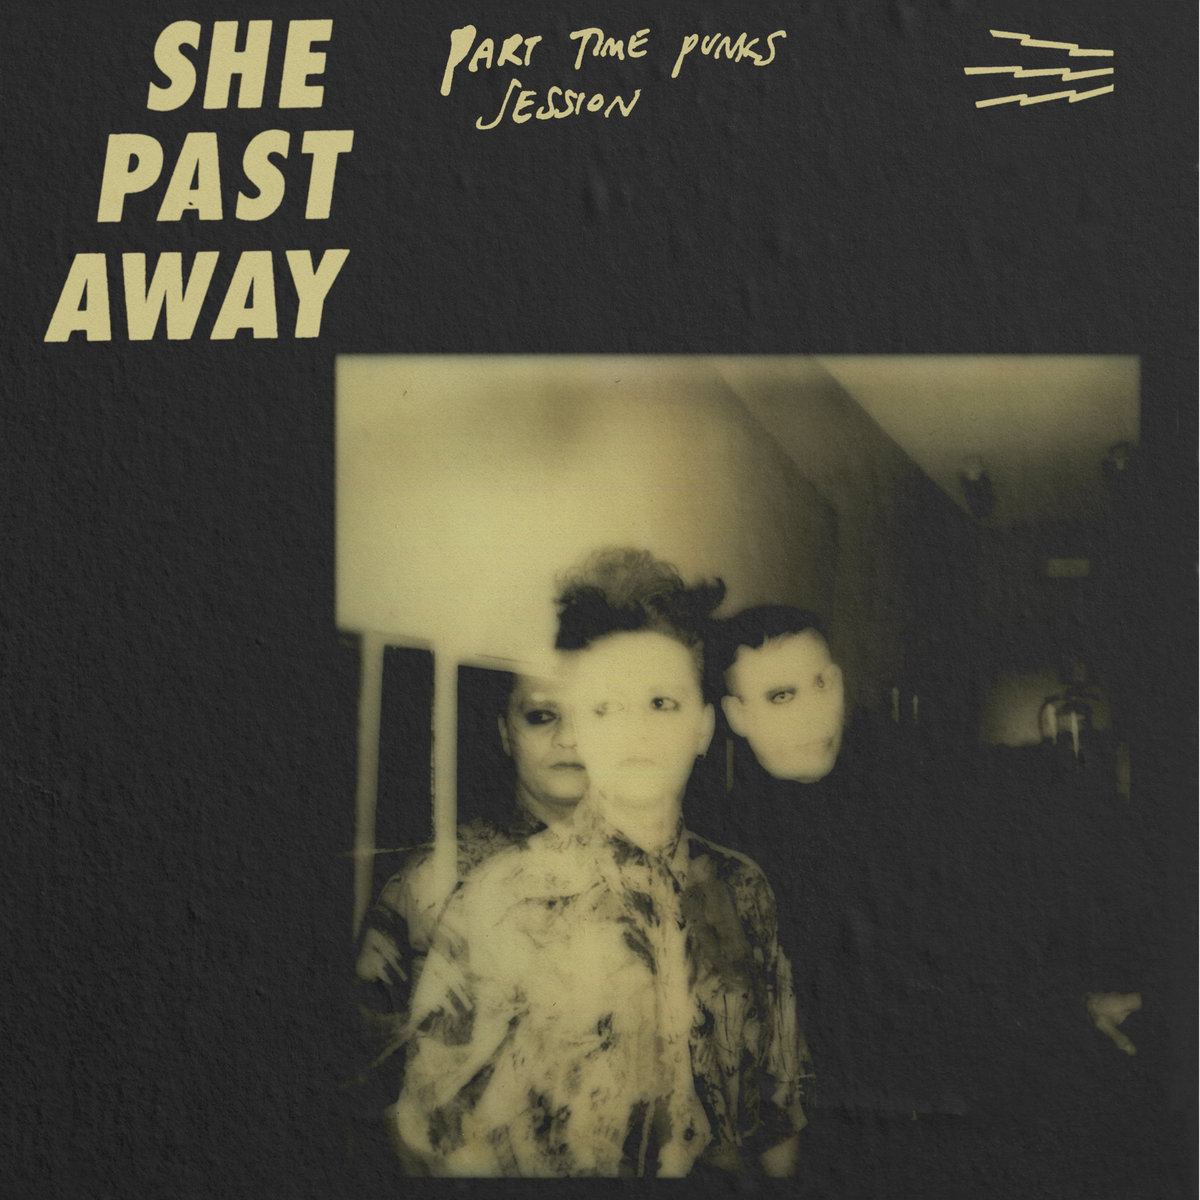 Post-punk shivers – She Past Away – Part Time Punks Session